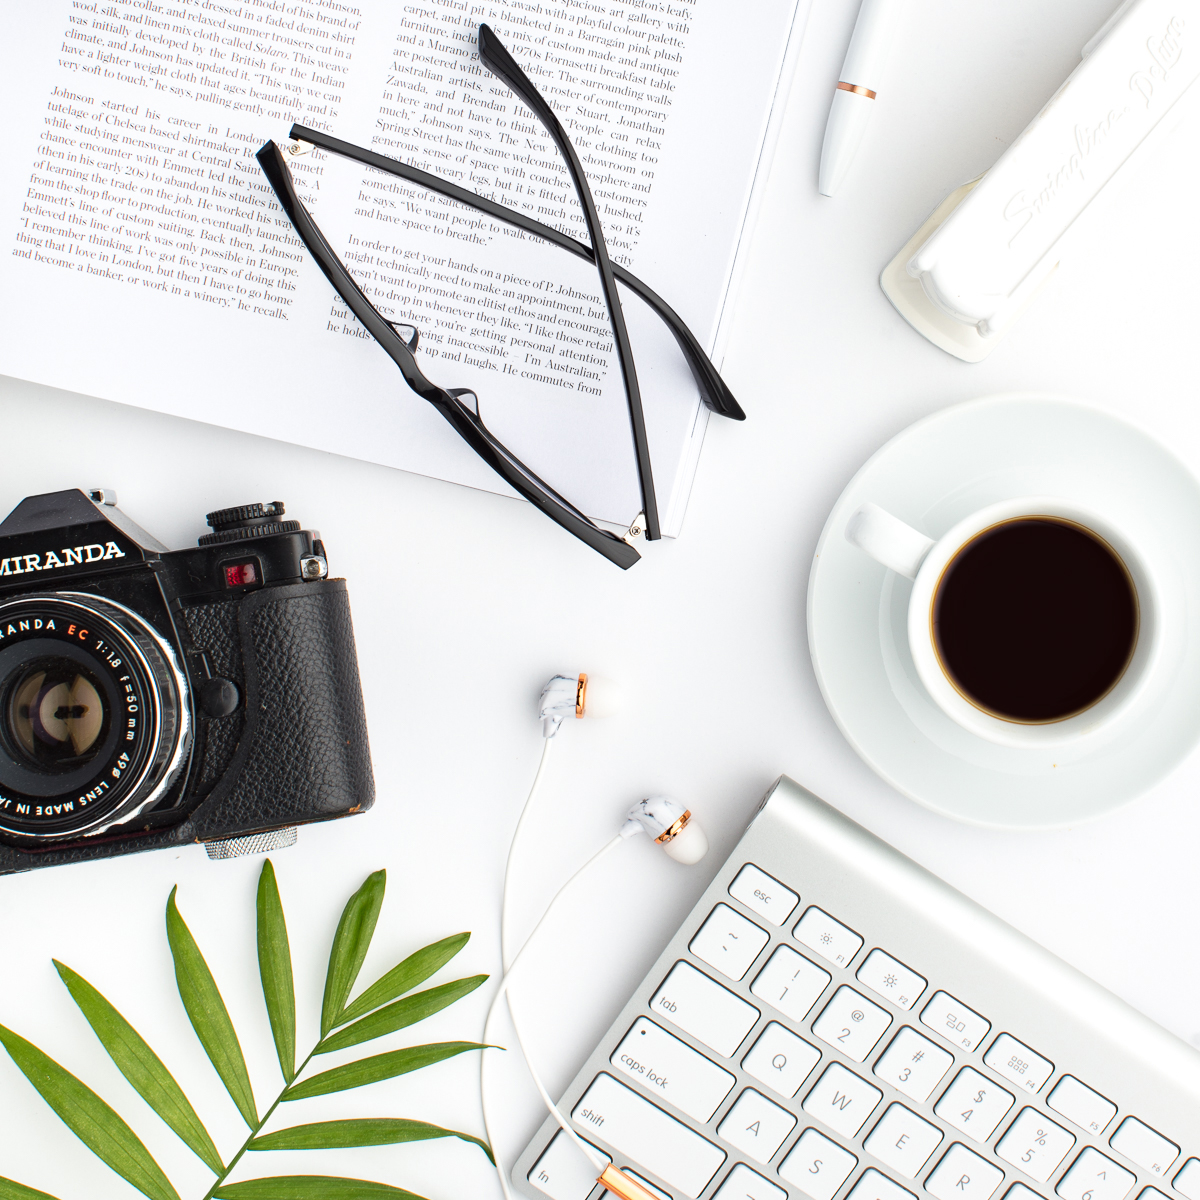 Styled Stock Photography_Social Media Images_Social Squares_Flatlay_Instagram Images0097.JPG